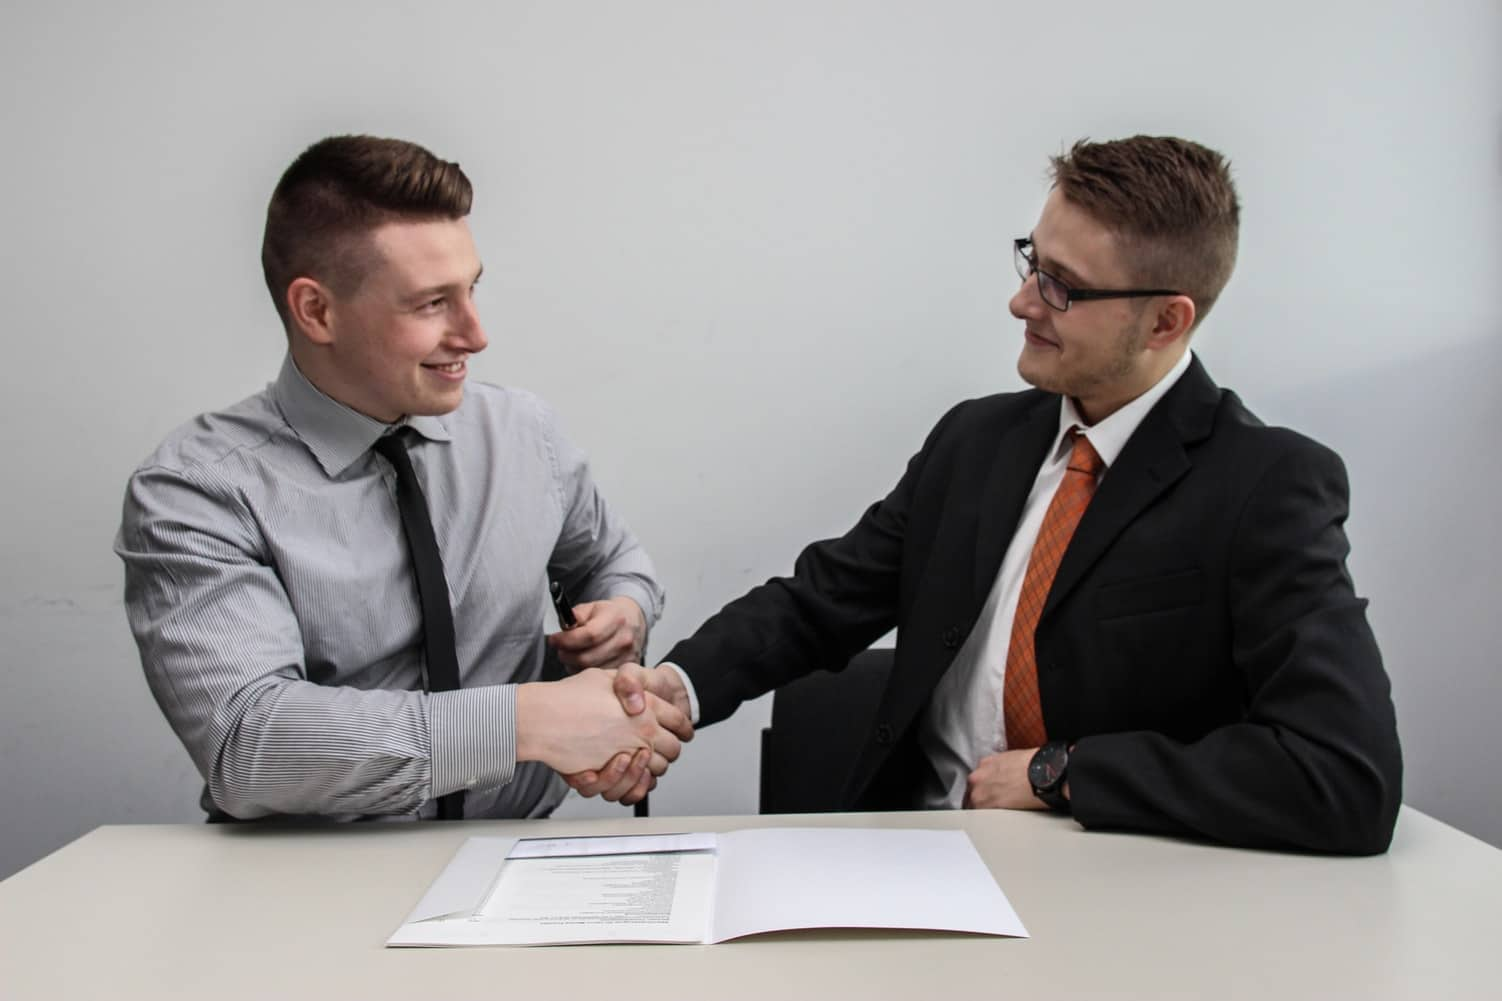 6 Interviewing Tips to Help You Get a Job Provided by an Engineering Staffing Agency